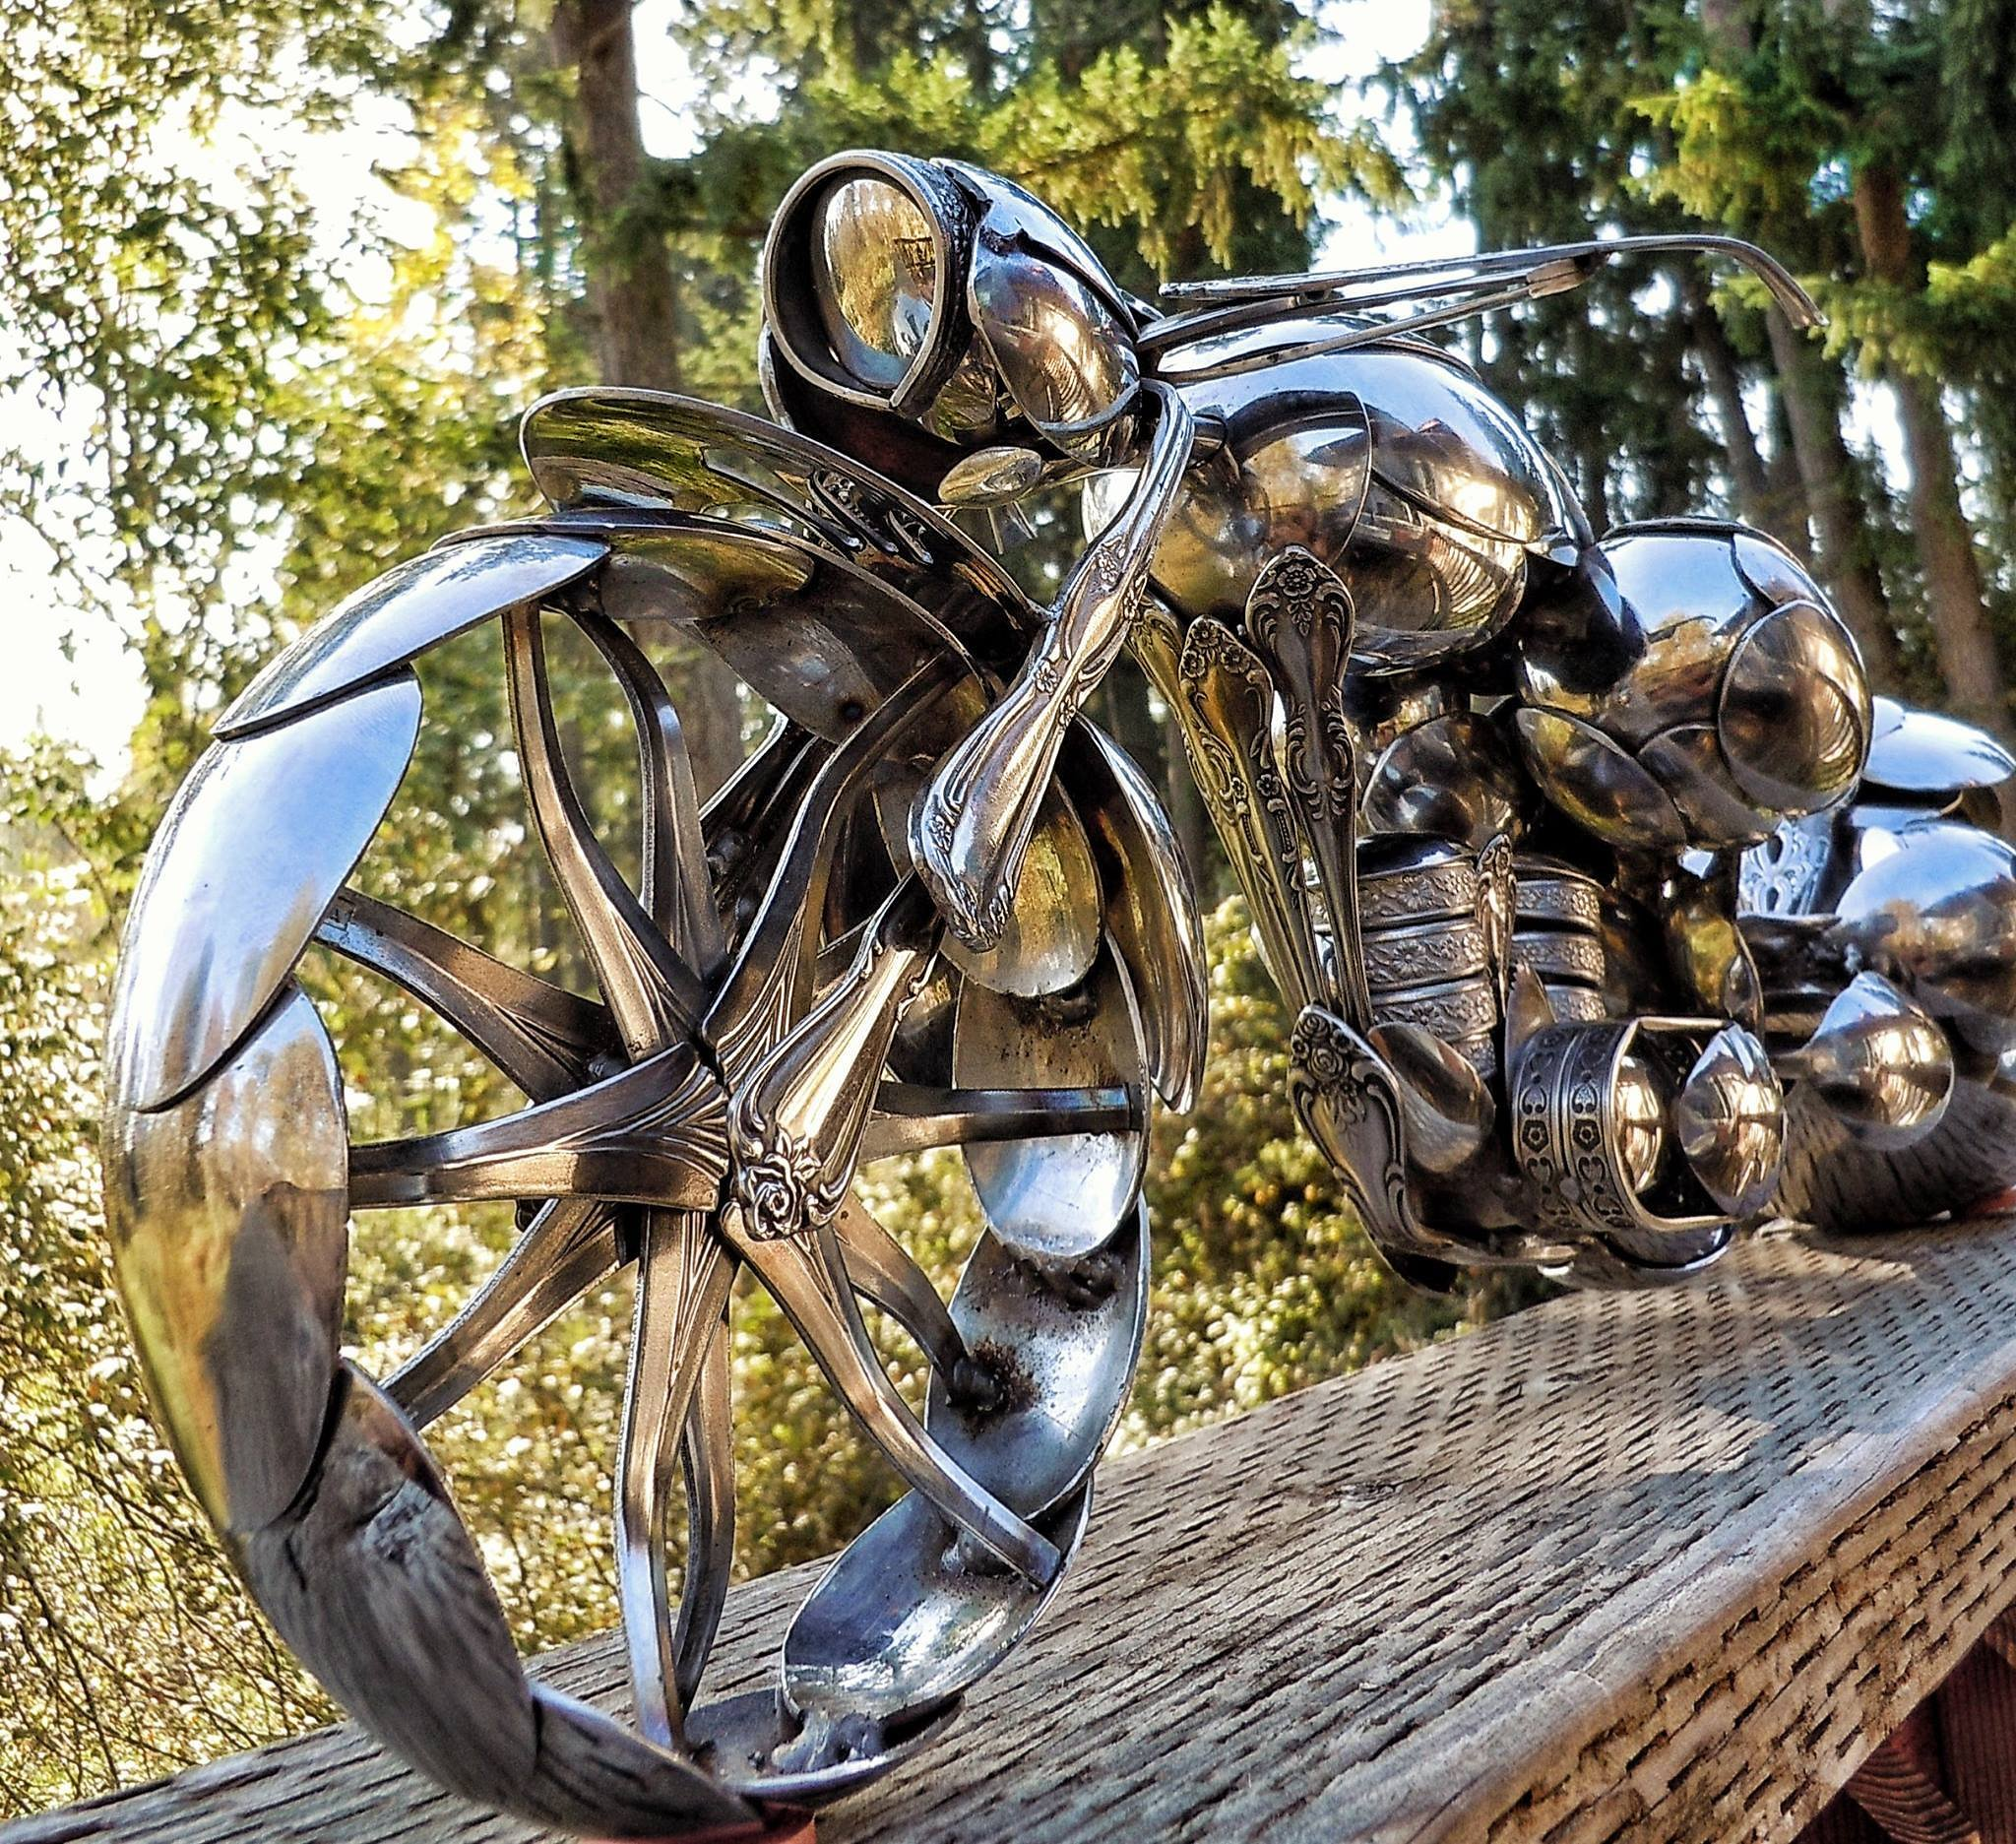 spoon motorcycle